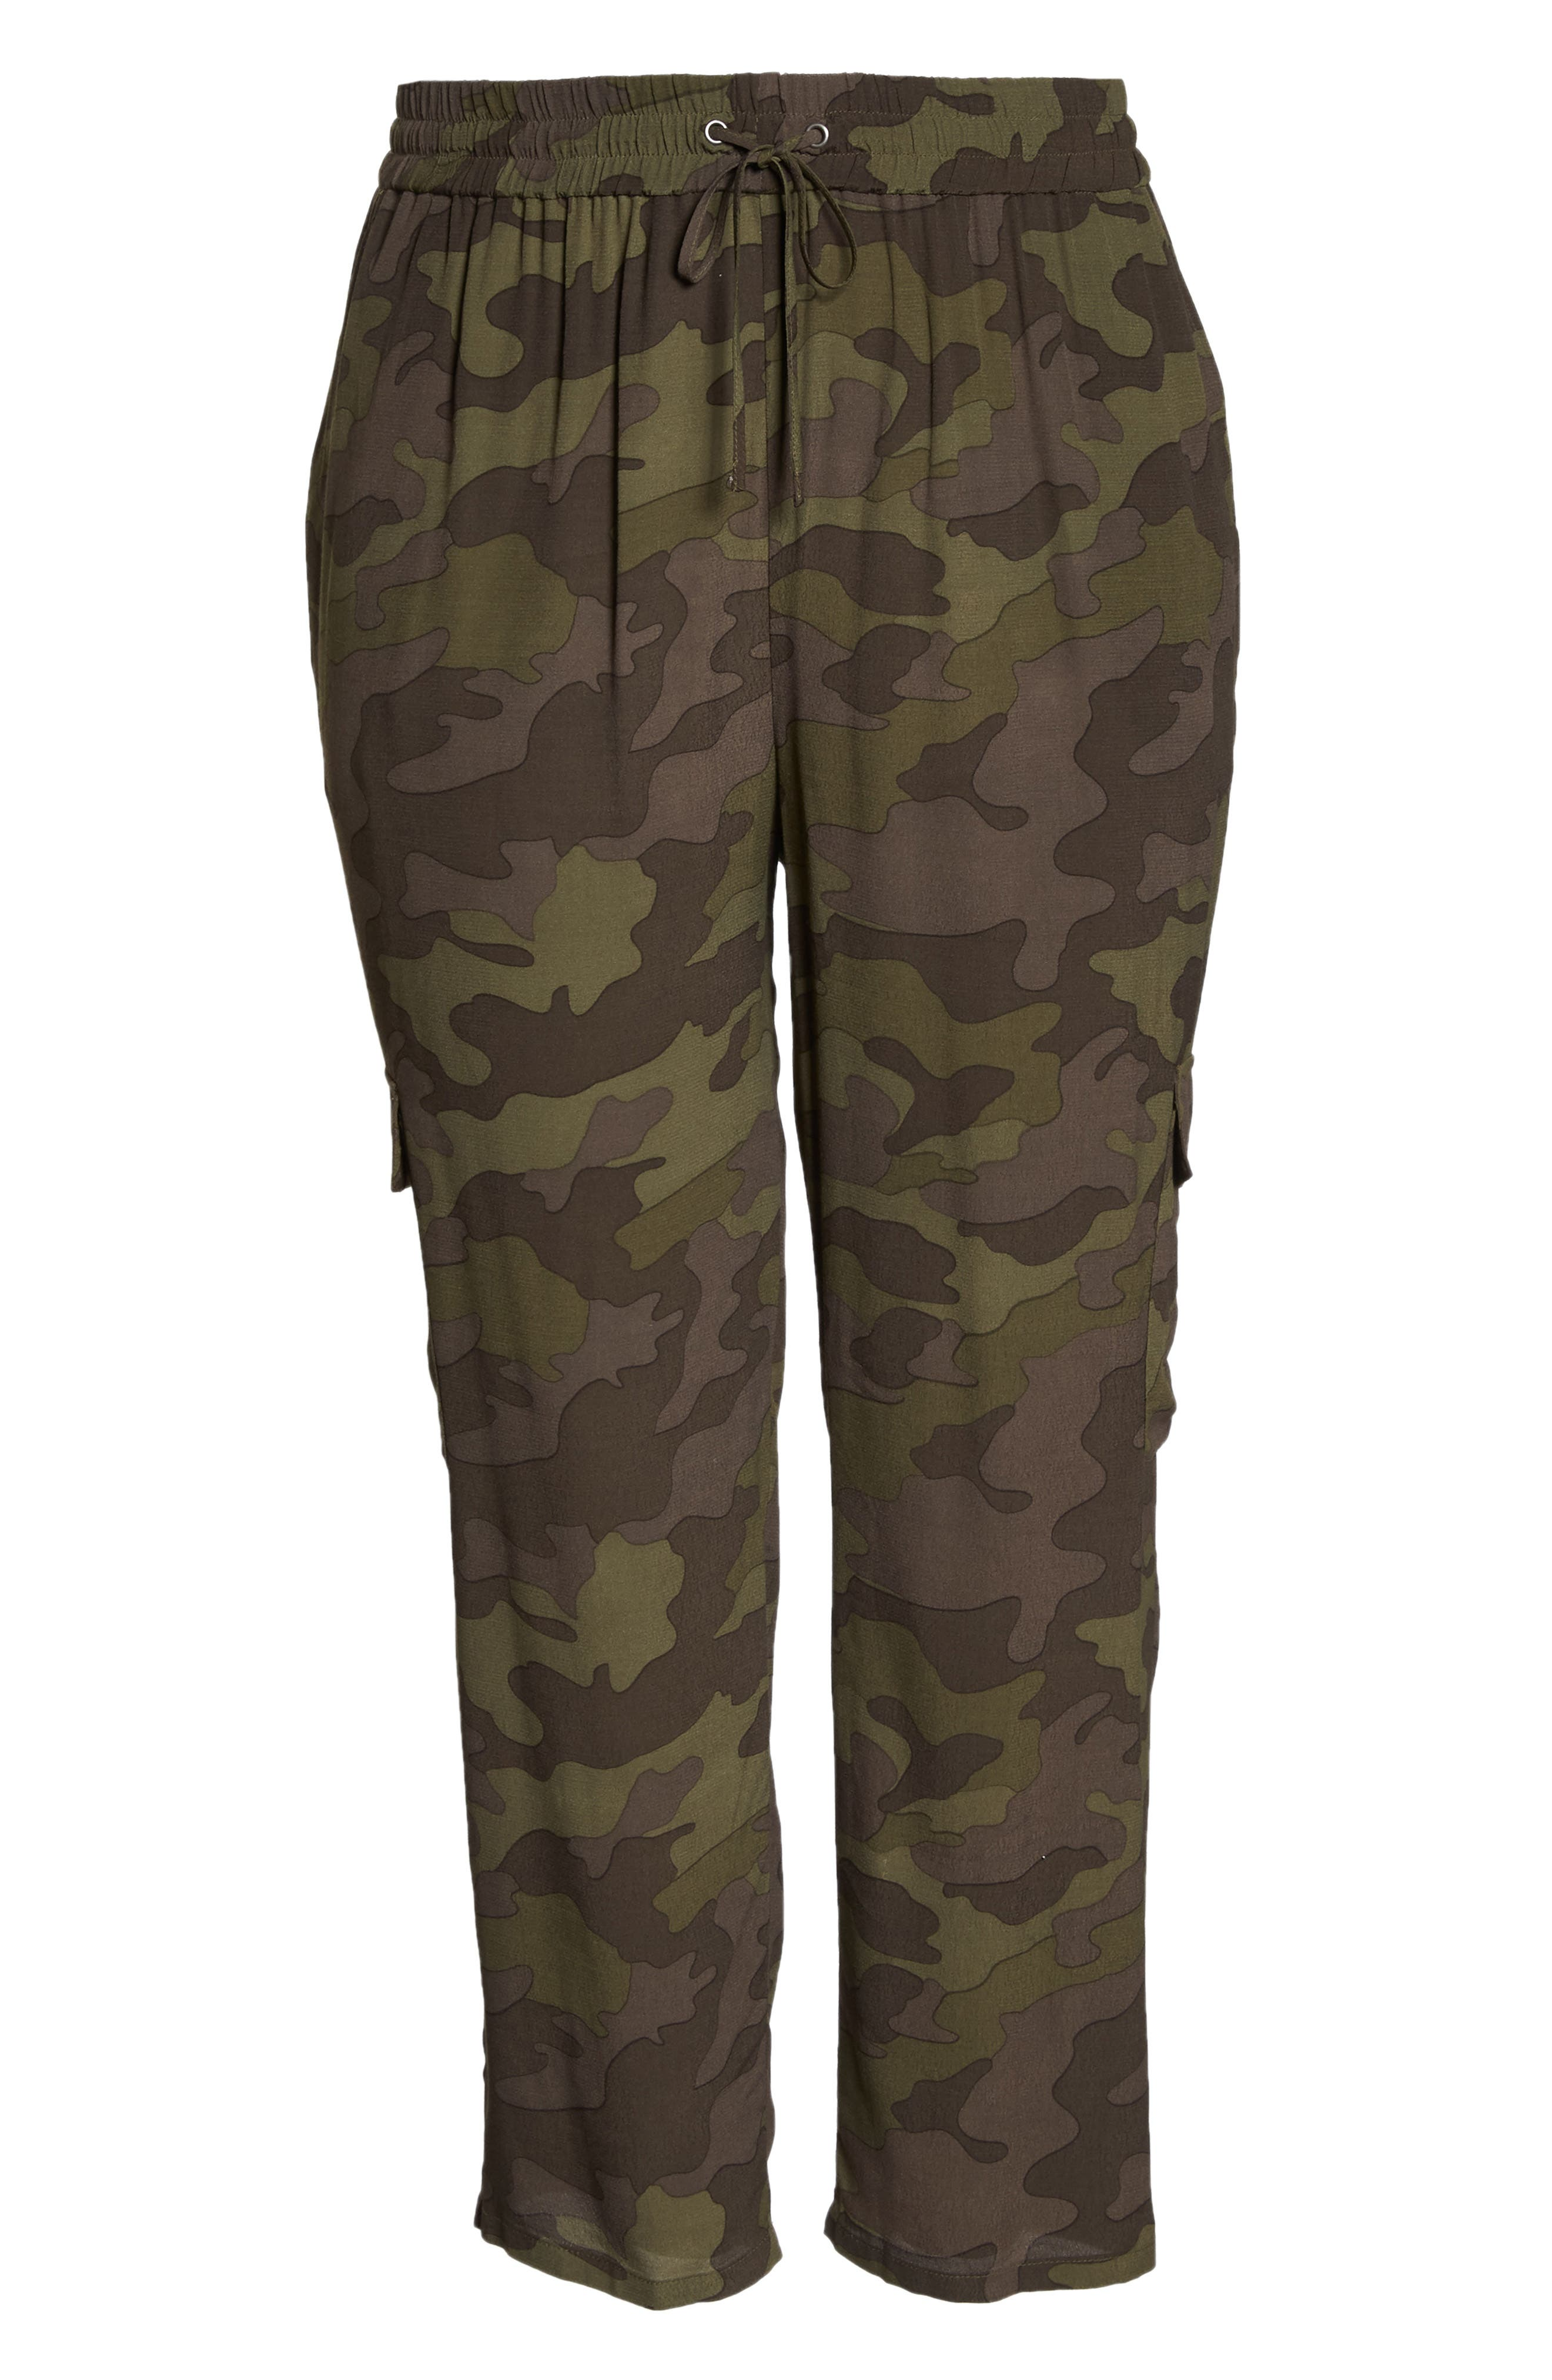 High Rise Camouflage Cargo Pants,                             Alternate thumbnail 11, color,                             210